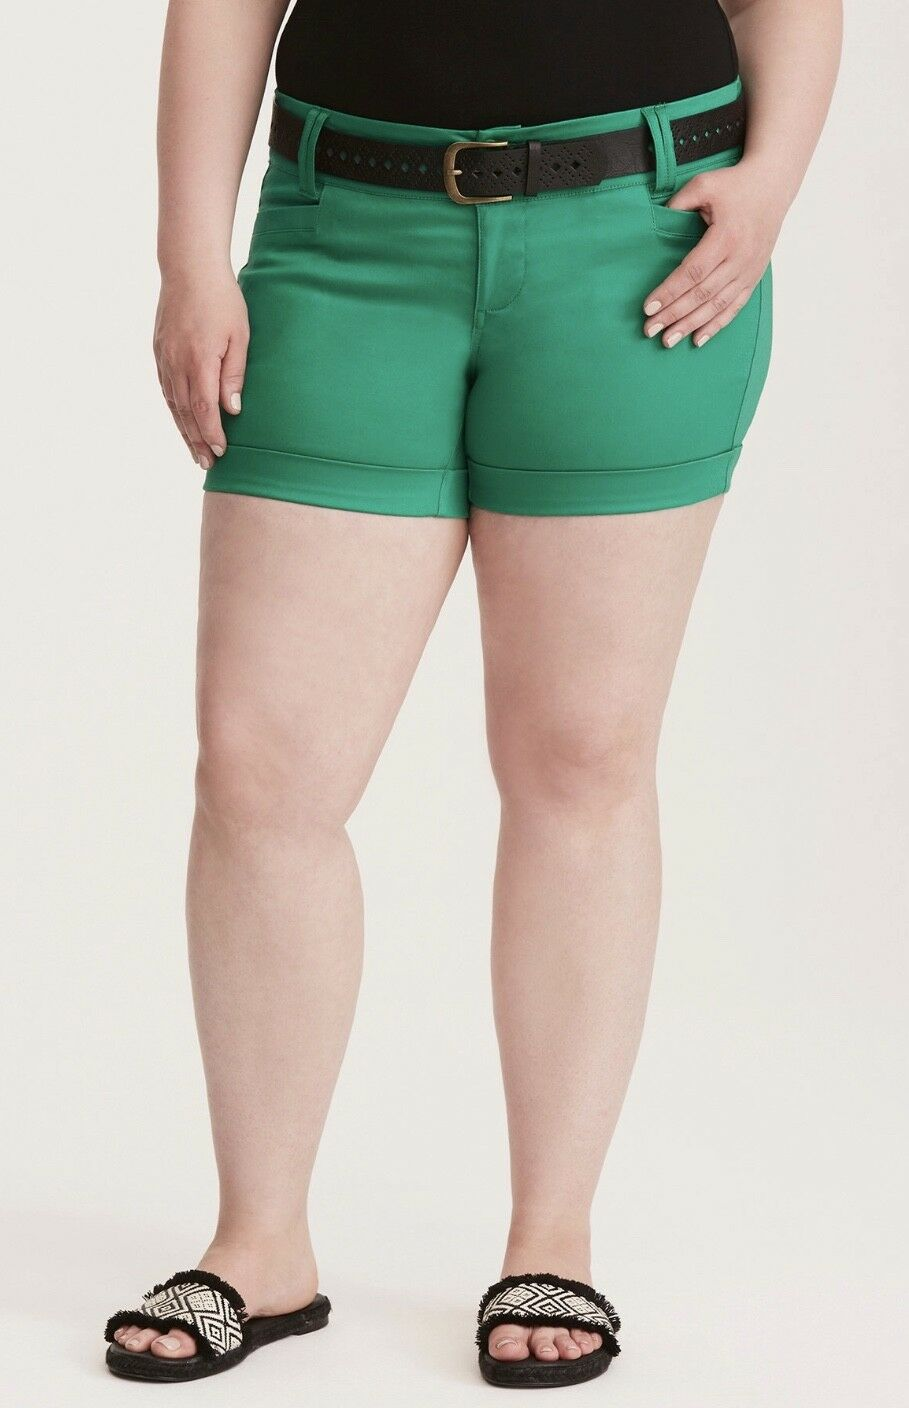 Torrid Plus Size Women's Green Belted Sateen Shorts New With Tags